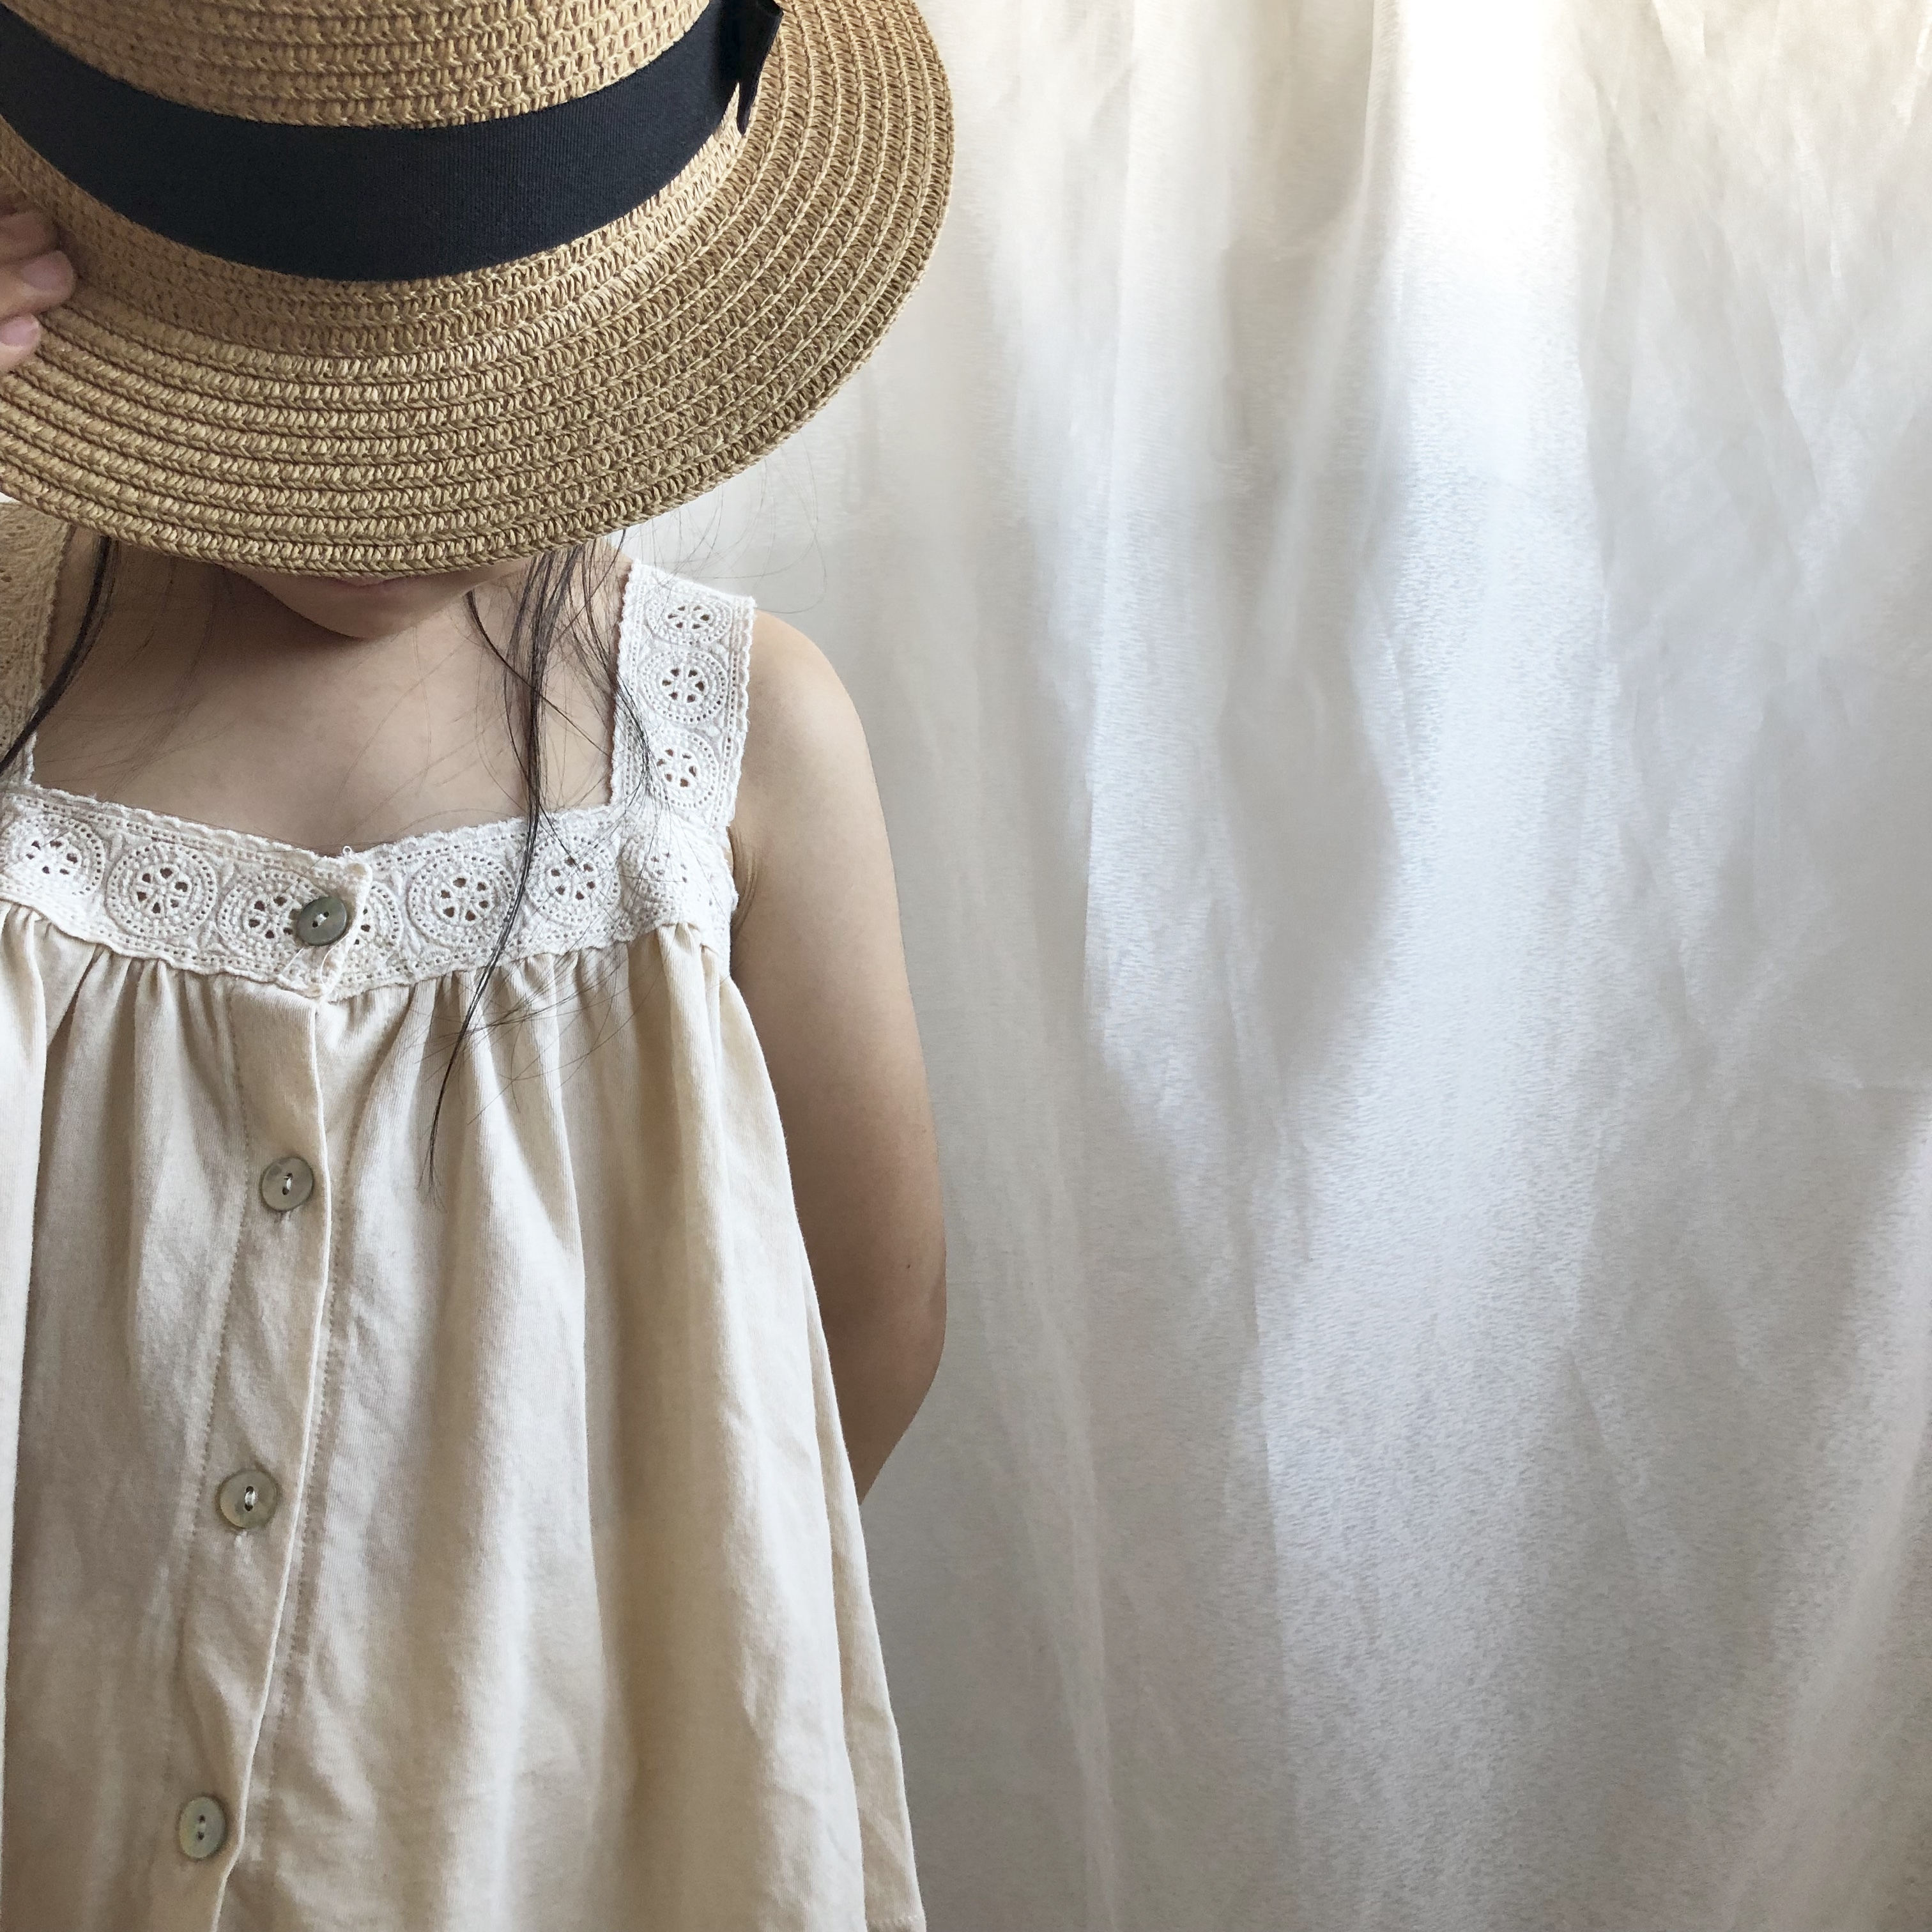 〈 227 〉Lace camisole